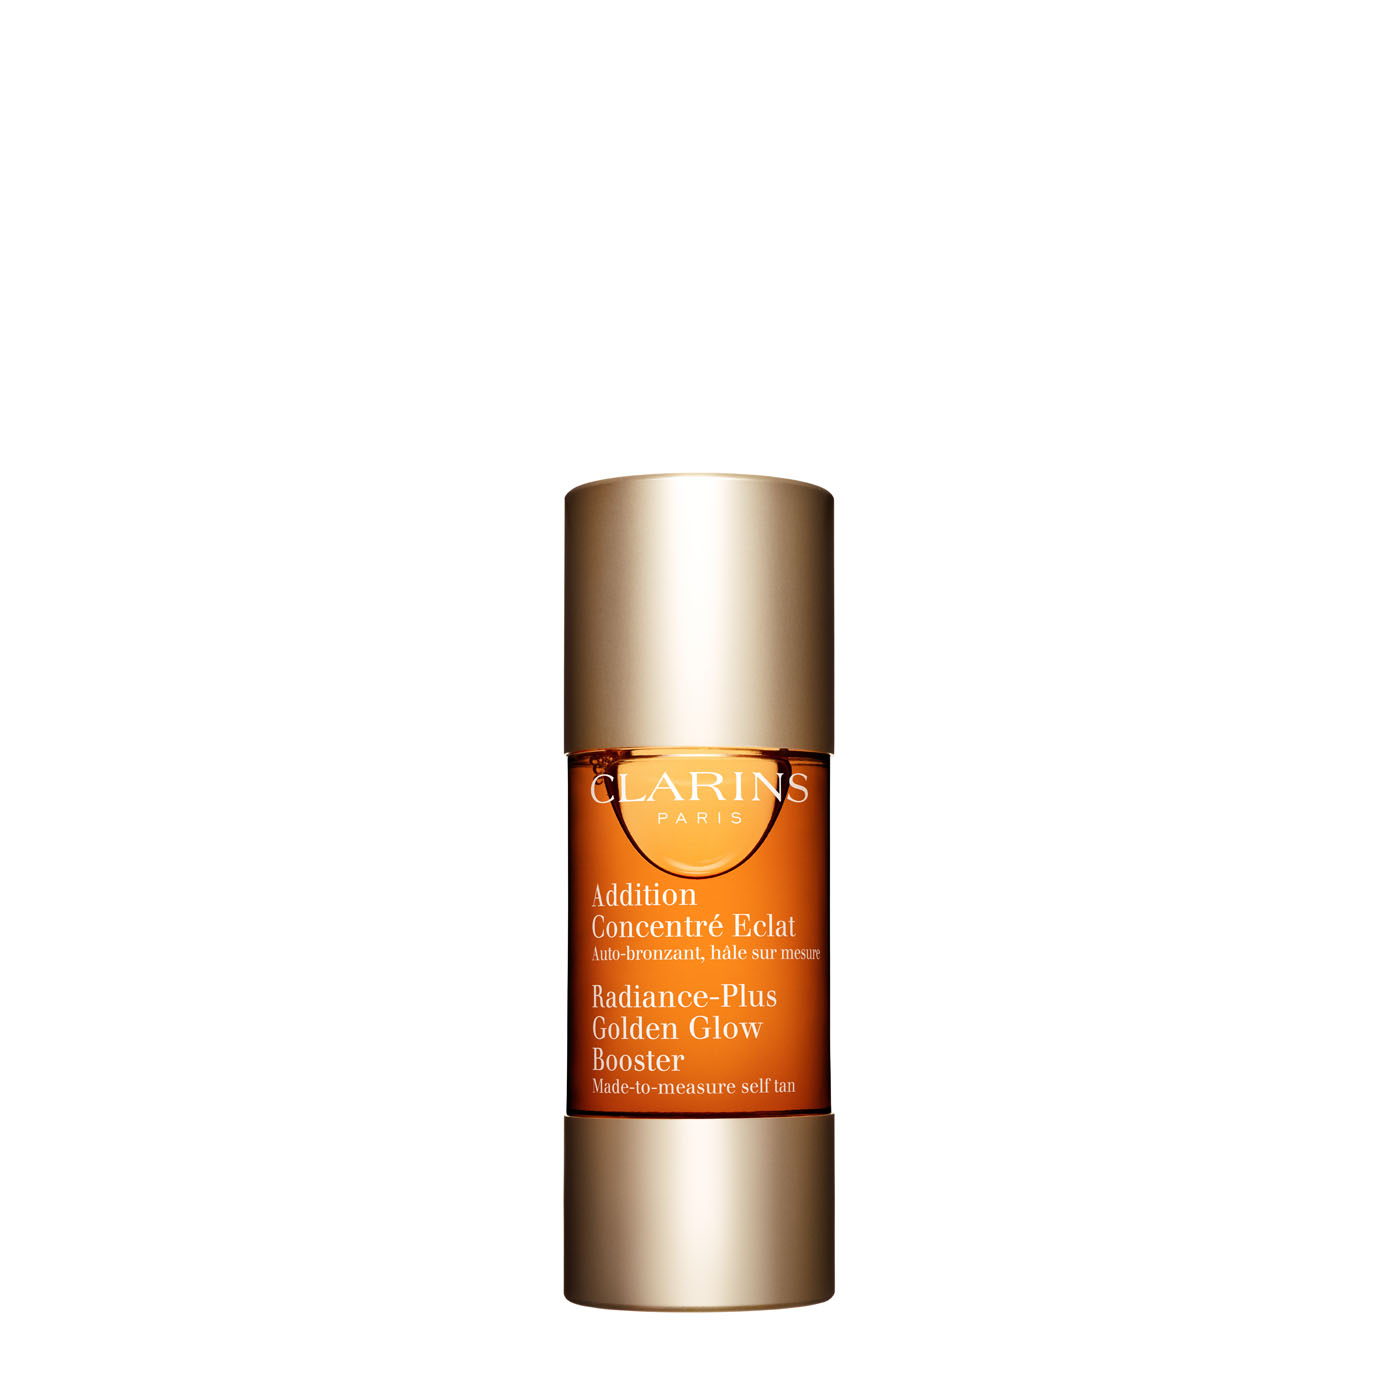 Radiance Plus Golden Glow Booster Face Clarins